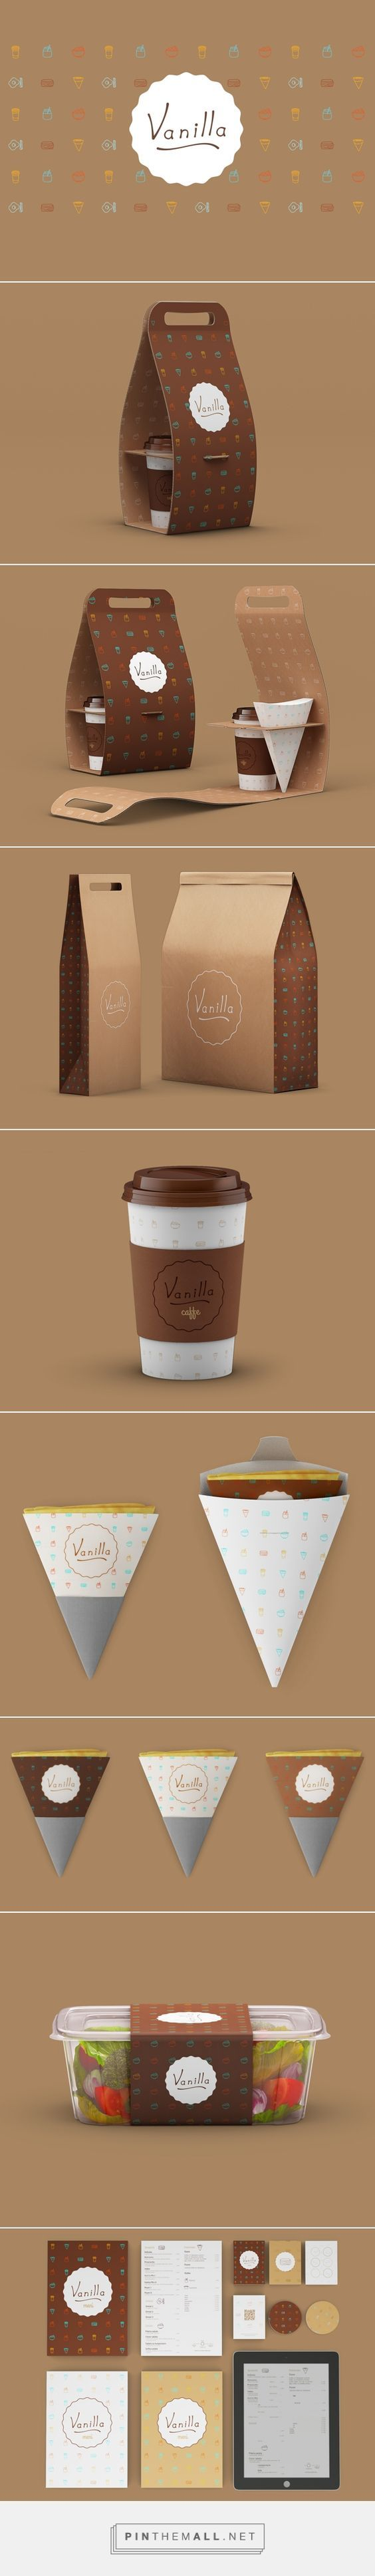 Vanilla Identity Packaging Branding On Behance By Mario Dragic Curated By Packaging Diva Pd A Small Foo Food Packaging Design Packaging Design Brand Packaging